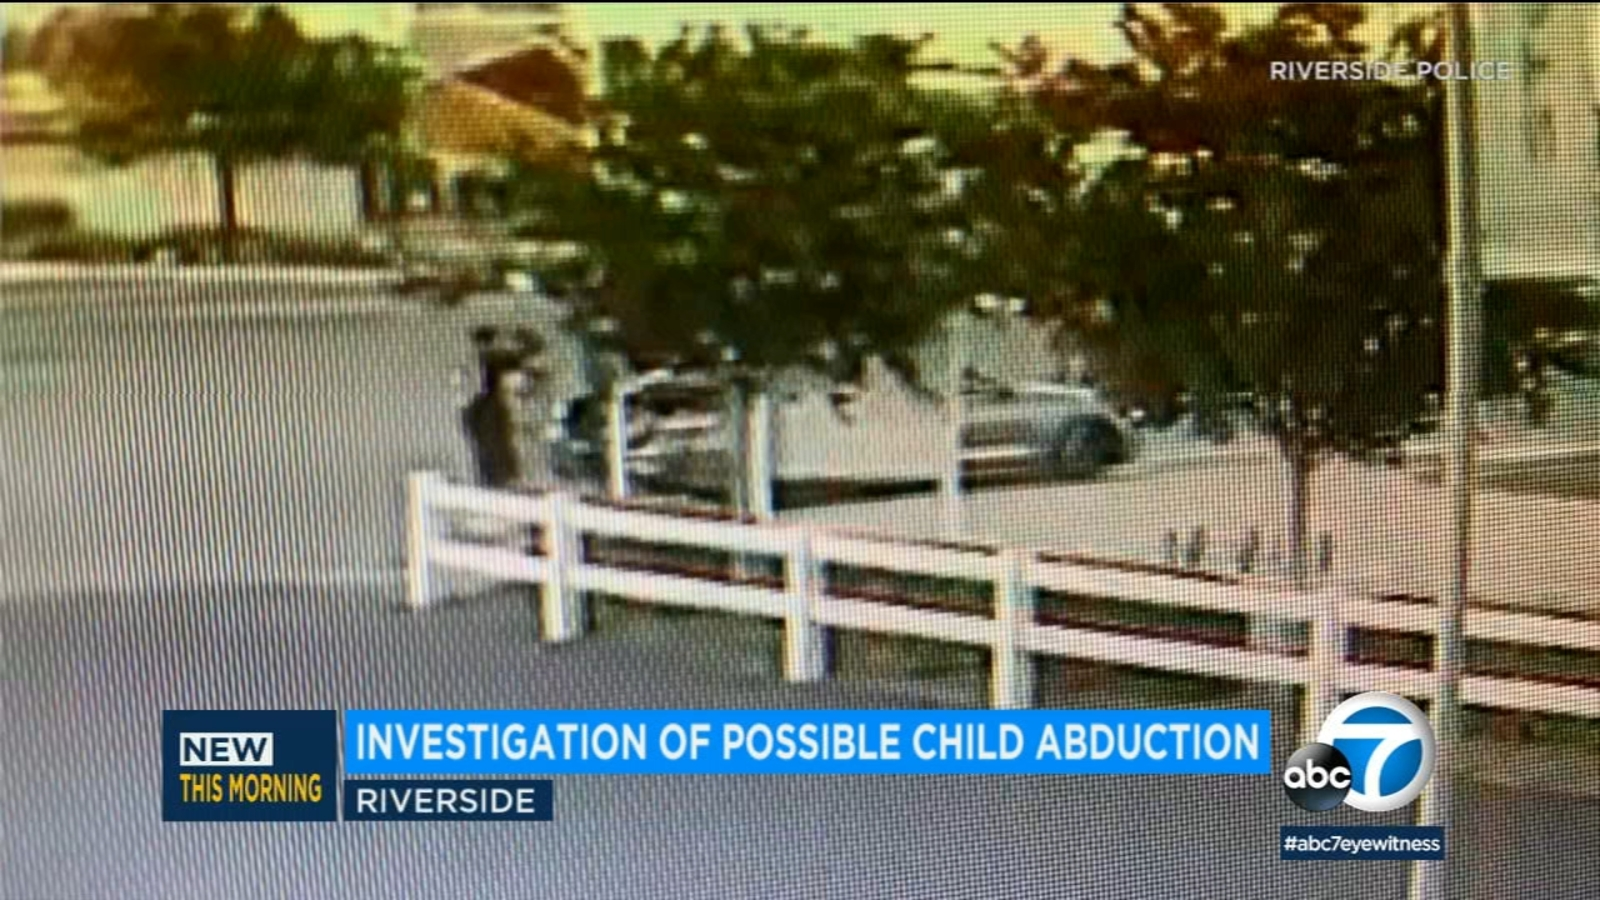 Police: Apparent Riverside abduction found to be drunken incident, not crime